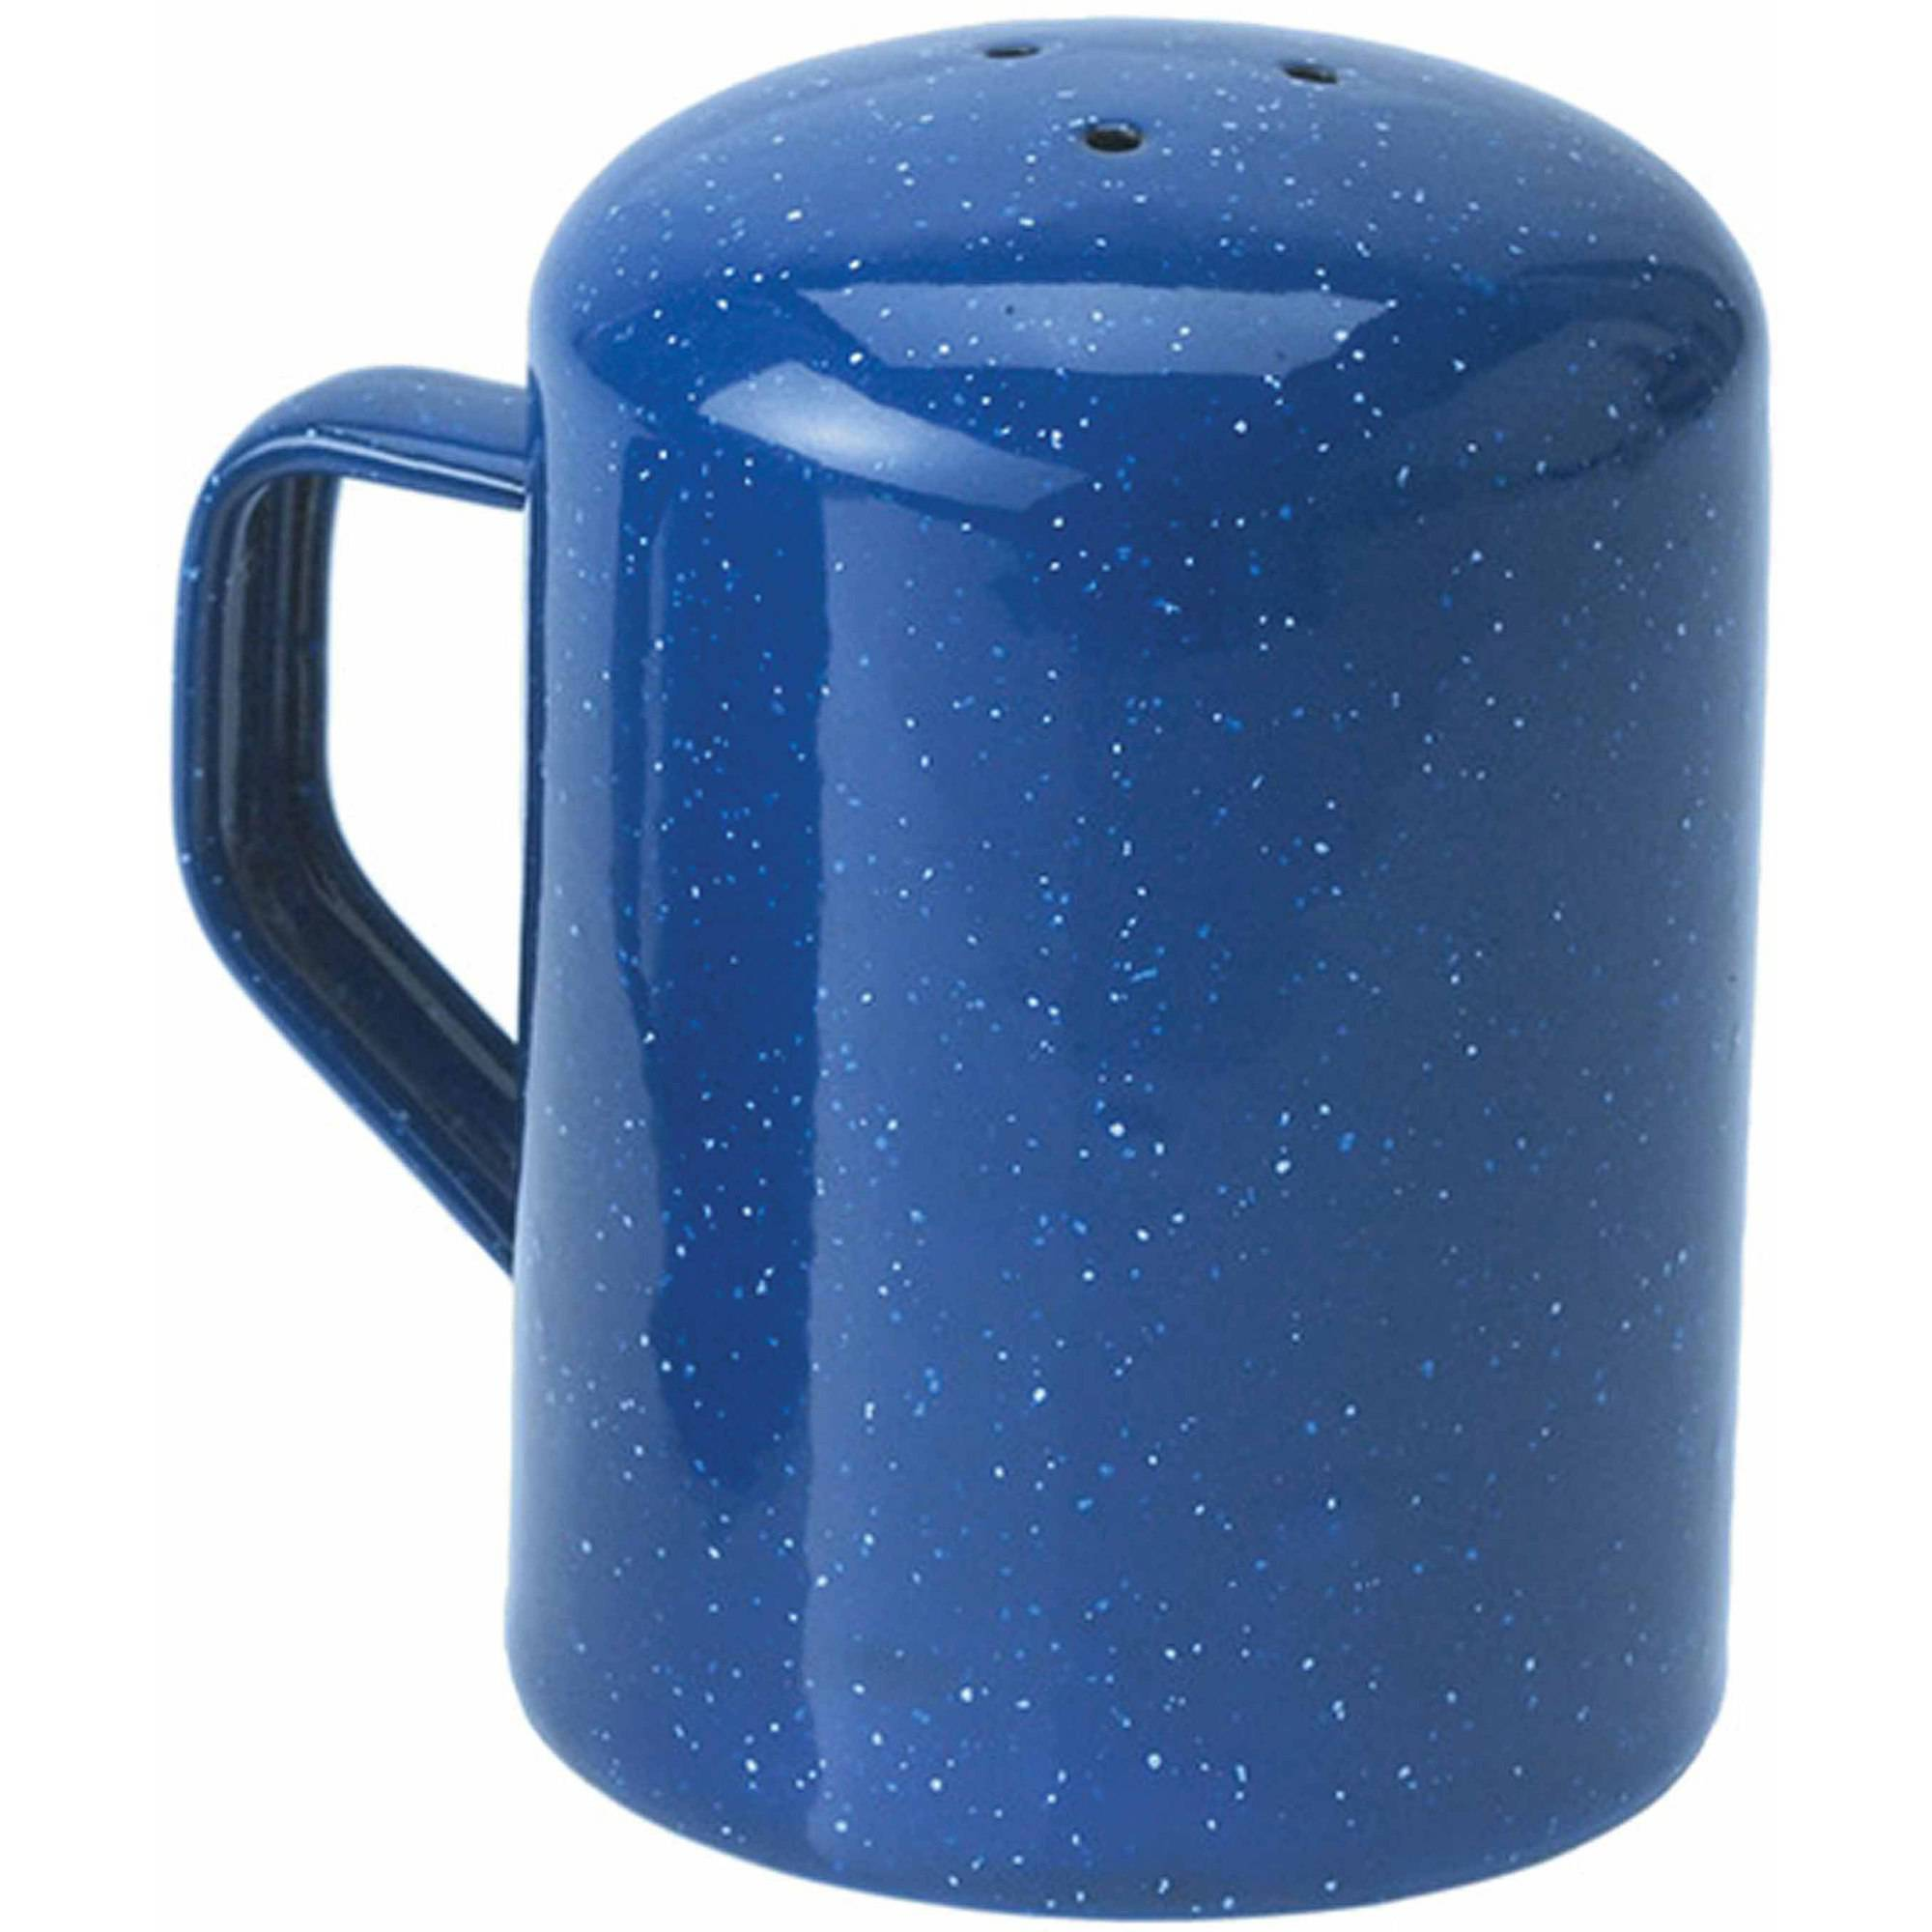 Motorscan Gsi Outdoors Enamelware 3-Hole Salt Shaker, Blue